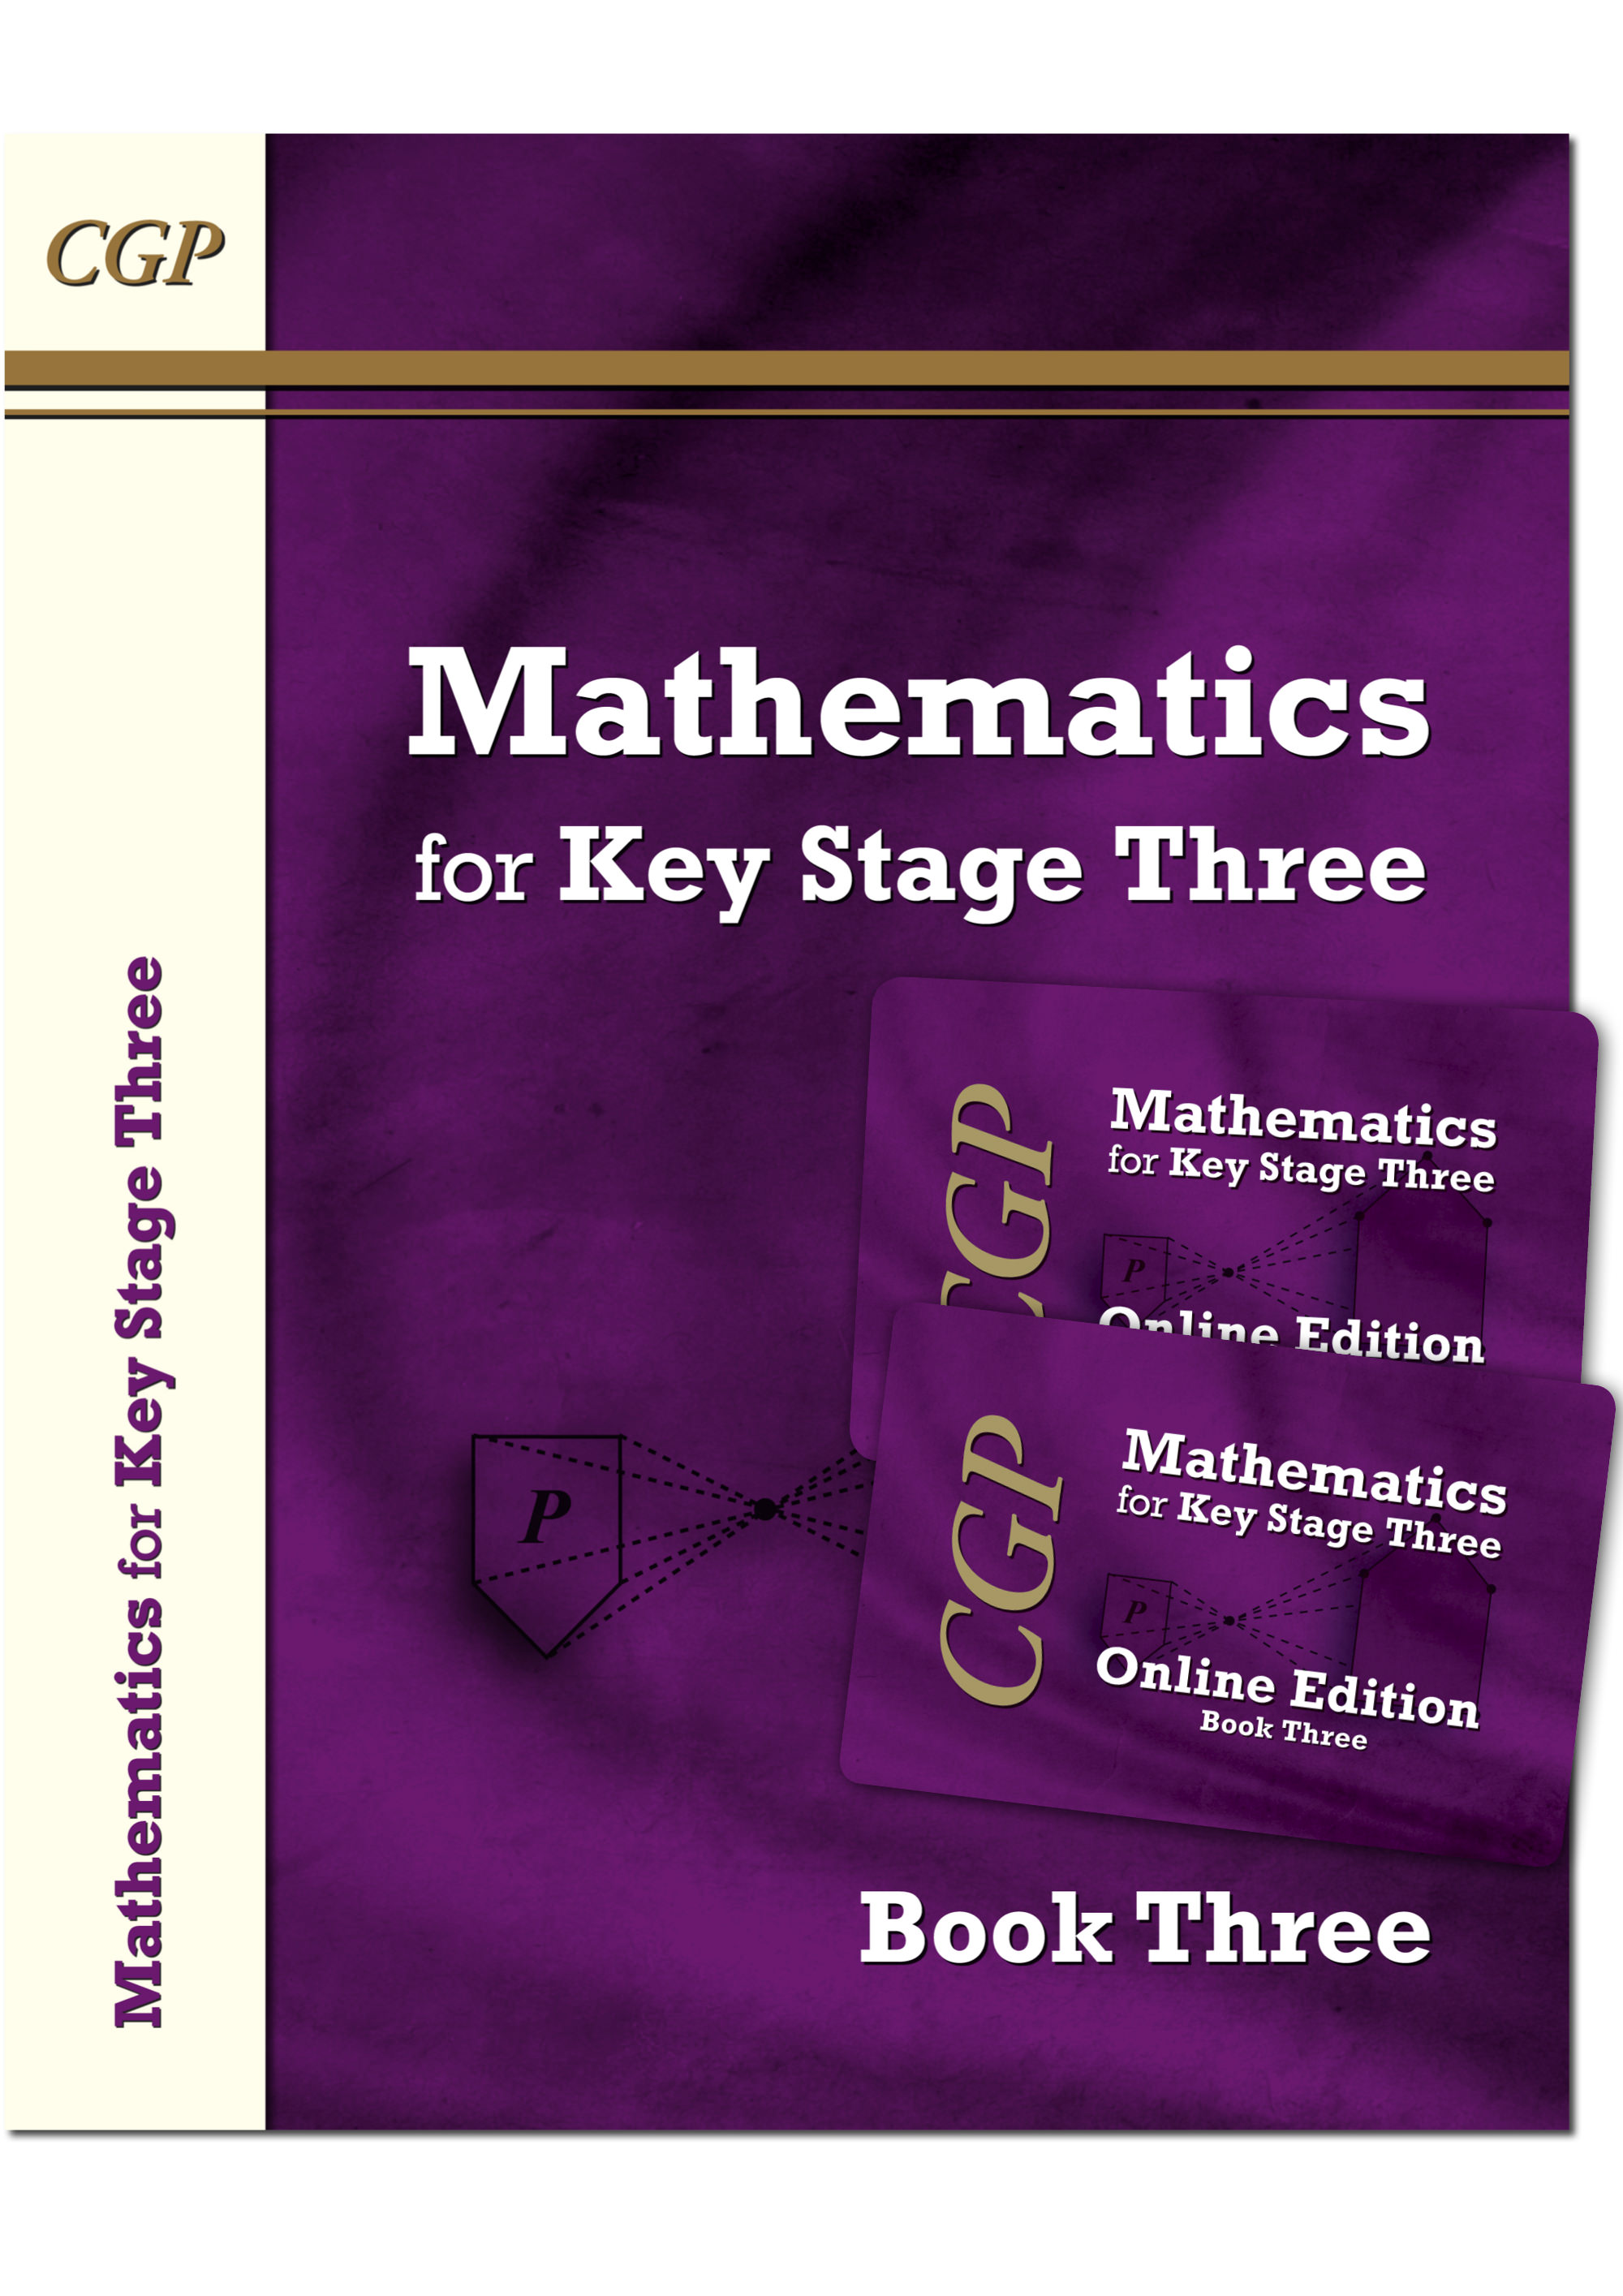 M3NNB31 - KS3 Maths Textbook 3 plus two Online Editions (without answers)